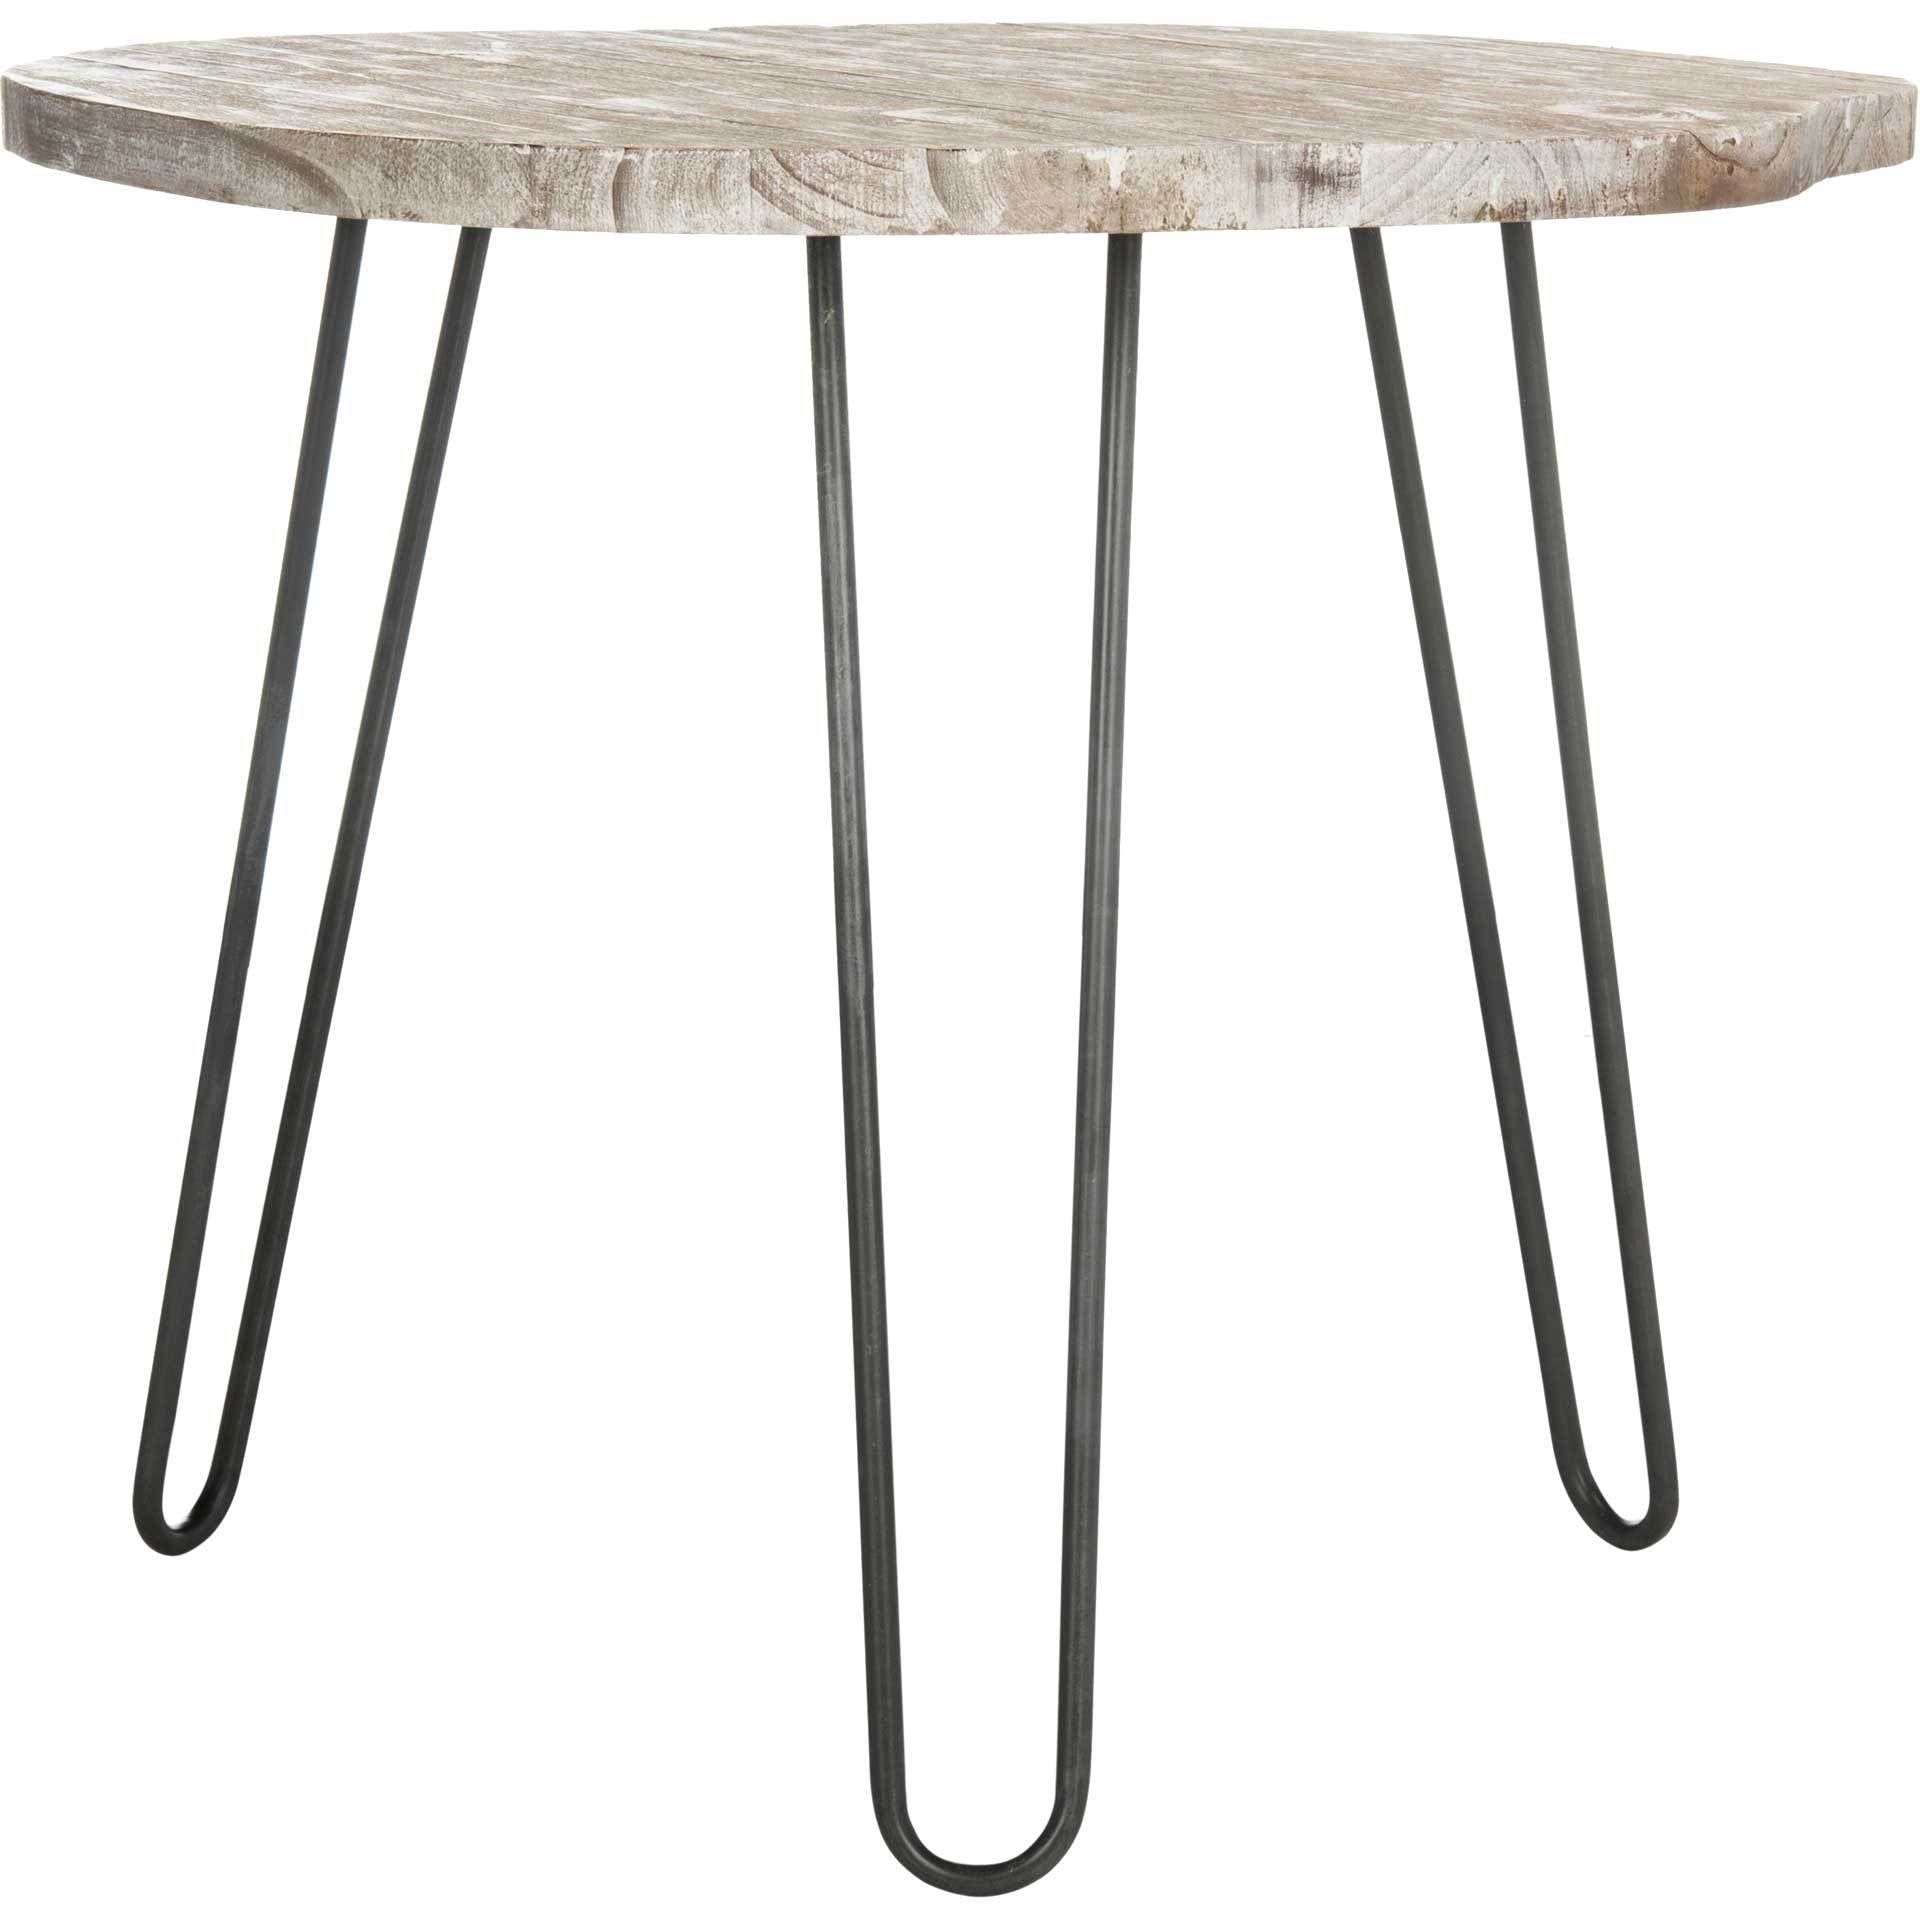 Miller Dining Table Natural